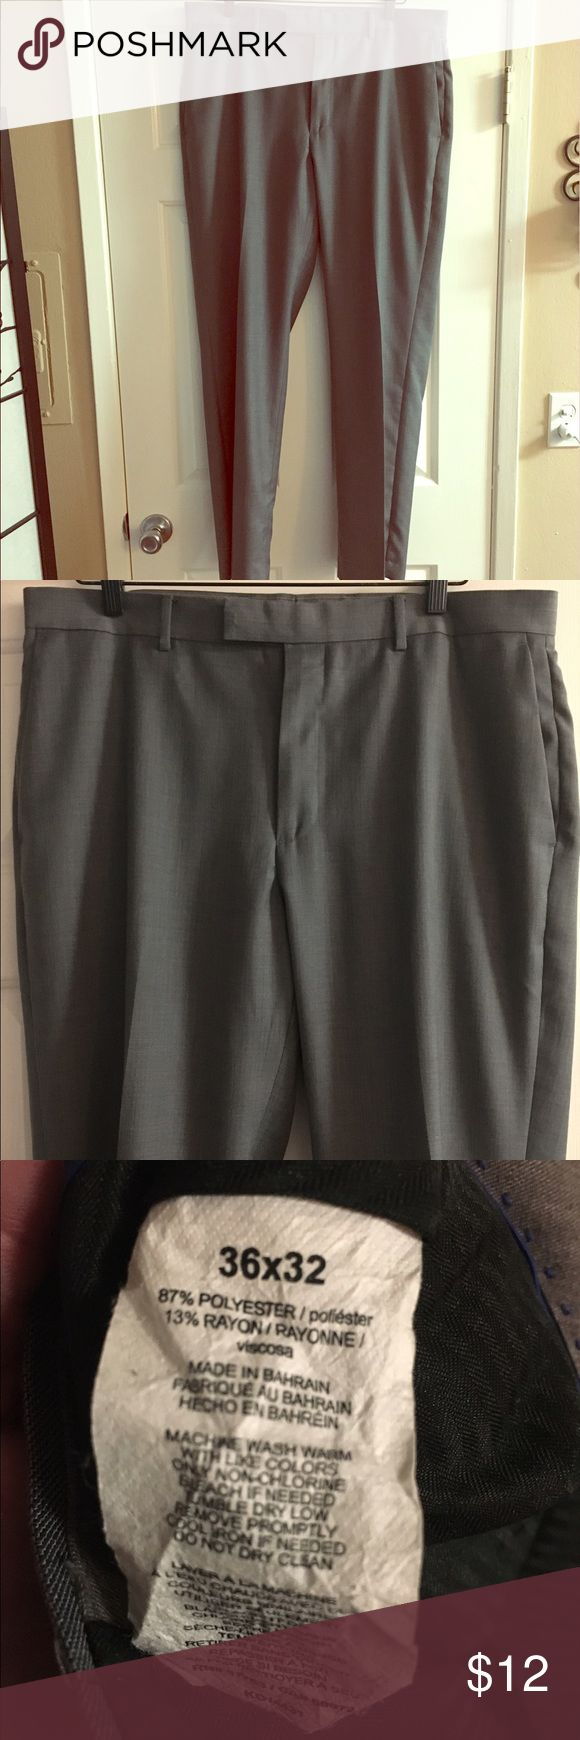 GREY MENS SLACKS AXIST 36x32 MENS Slacks Size 36x32, good condition. No signs of Wear.  Straight Flat front not pleated axist Pants Trousers